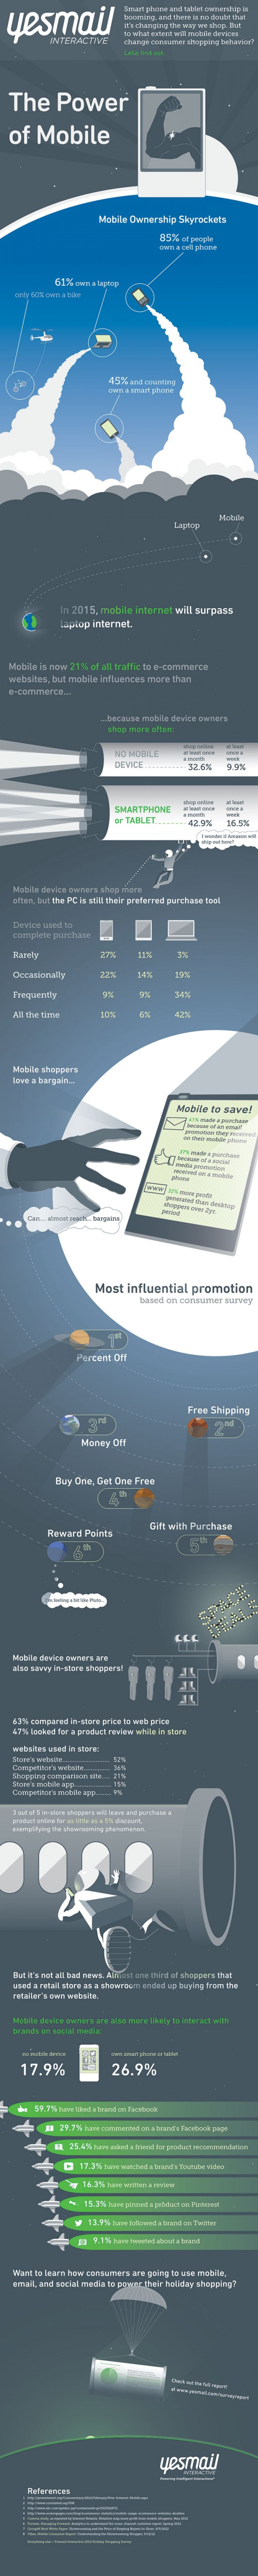 Yesmail Interactive: The Power of Mobile Infographic